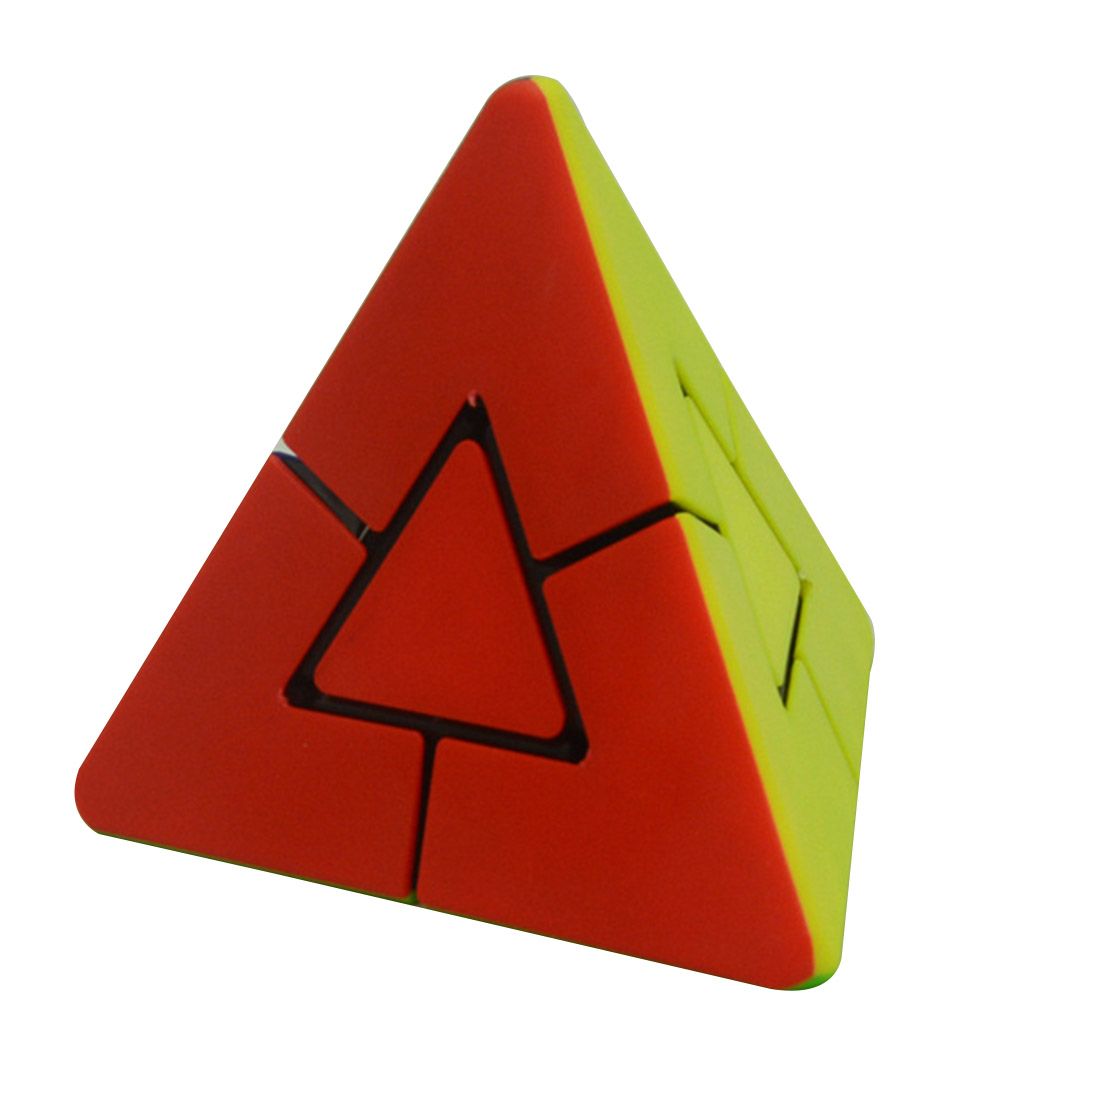 Lefang 2x2 Strange Shape Pyramid Magic Cube Brain Teaser Puzzle Cube Educational Toy yj brain teaser 2 x 2 x 2 magic iq cube multicolored